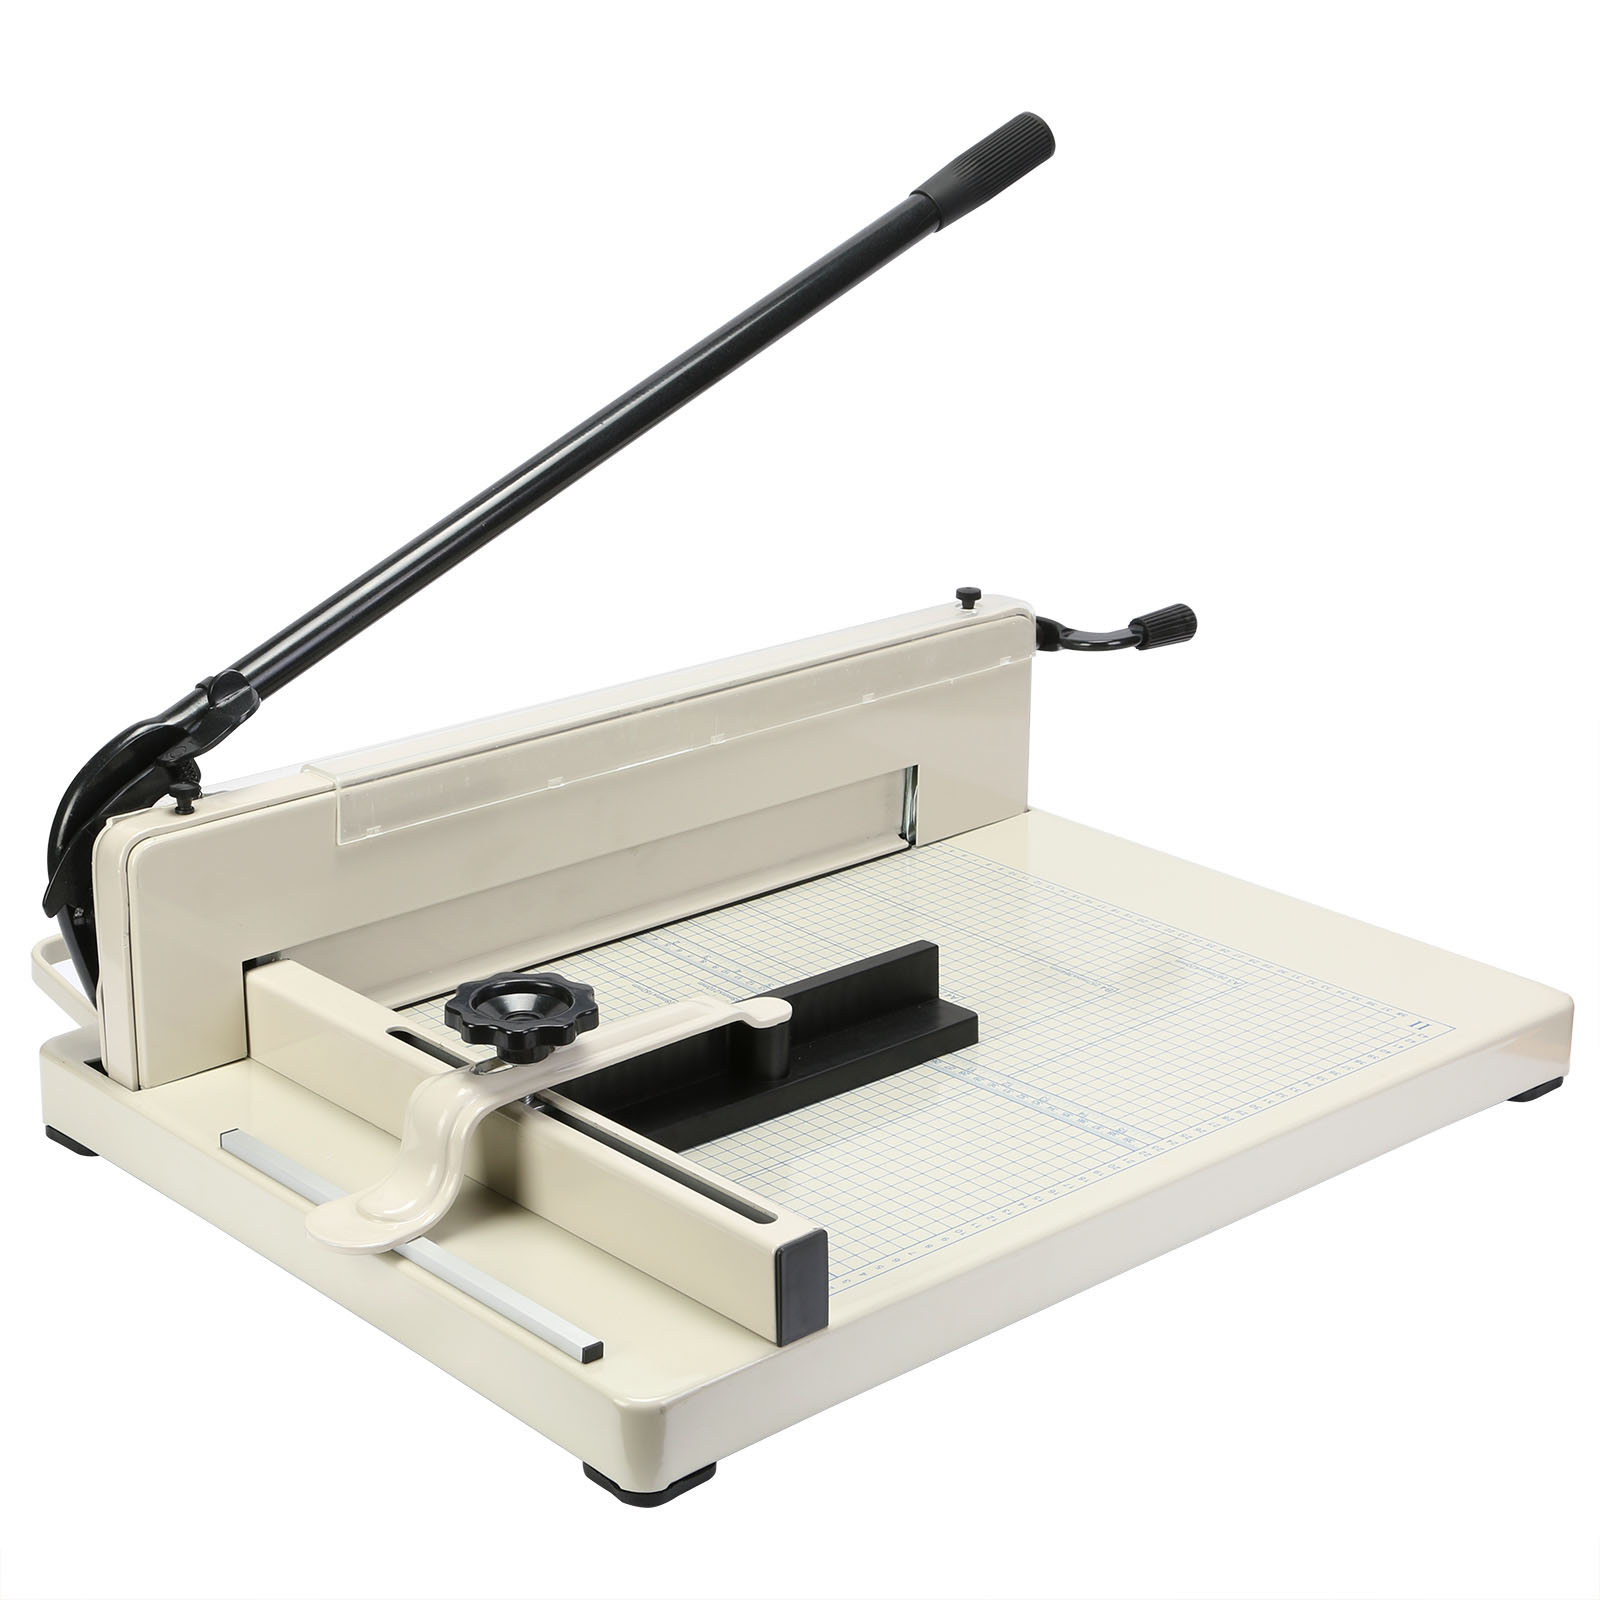 heavy duty paper cutter Authorized dealer for challenge and triumph paper cutters and paper trimmers   20 cutter heavy-duty 20 hydraulic fully automatic paper cutter manual back.